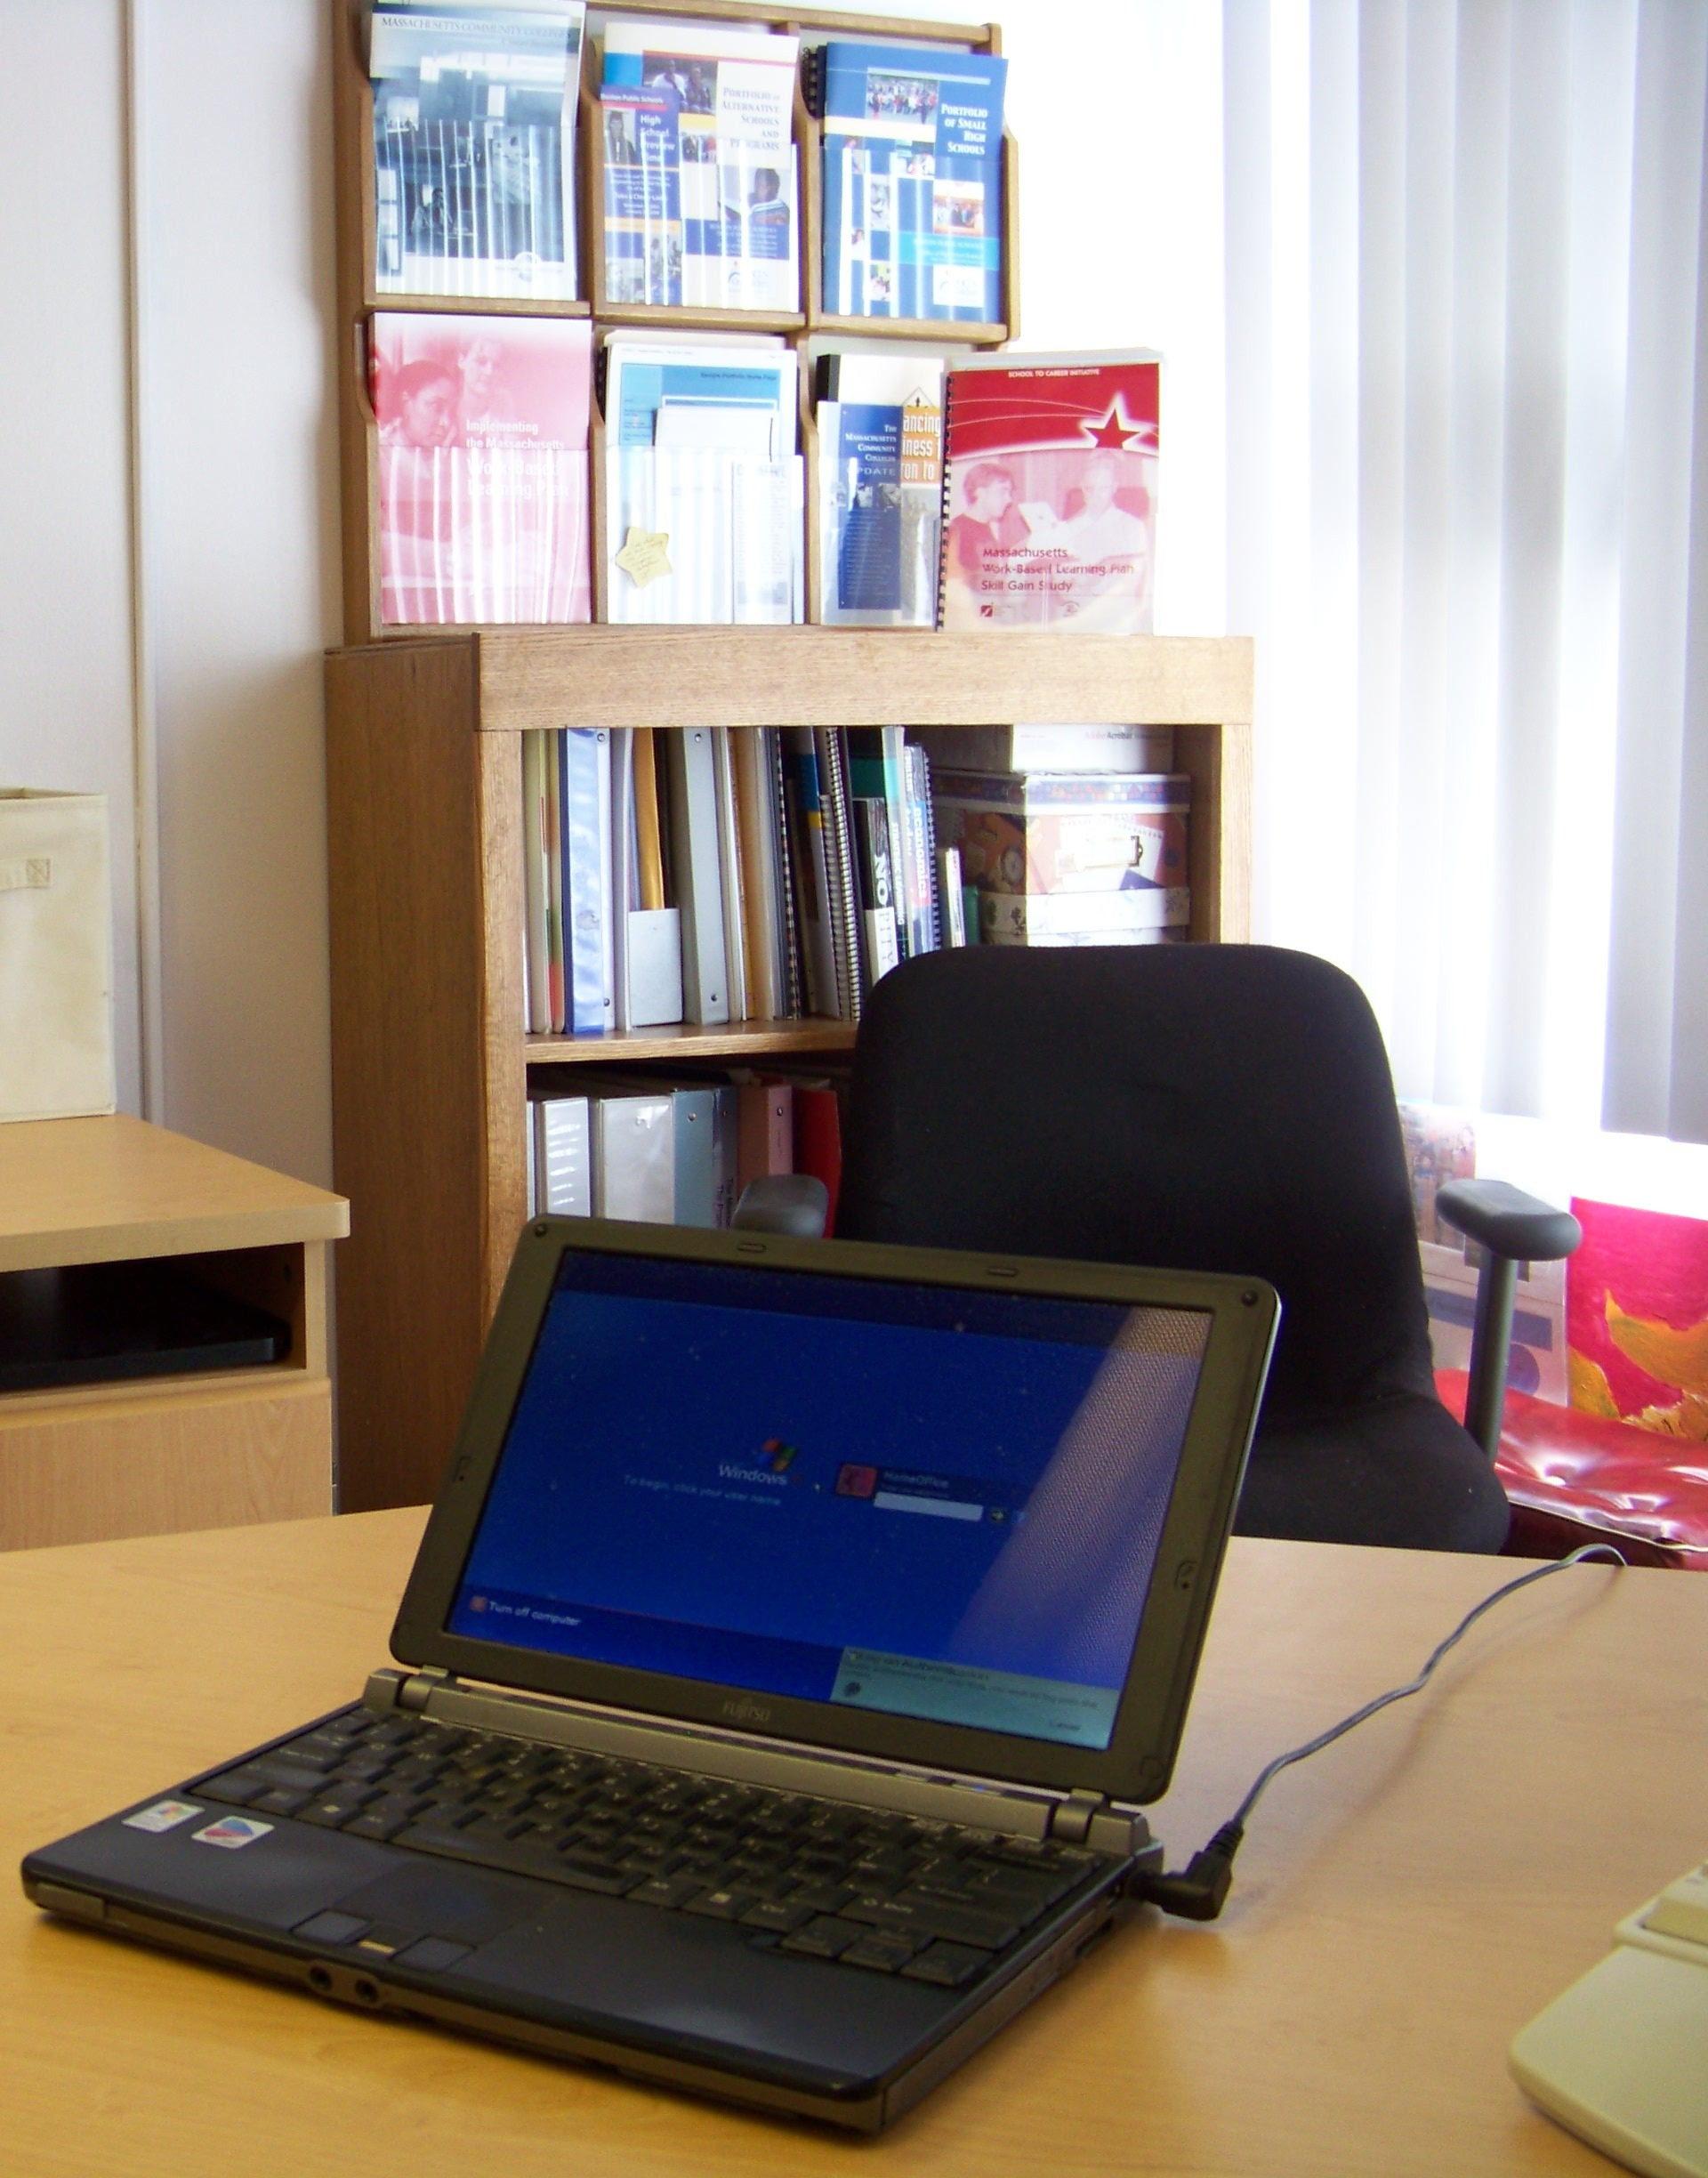 Office photo with computer